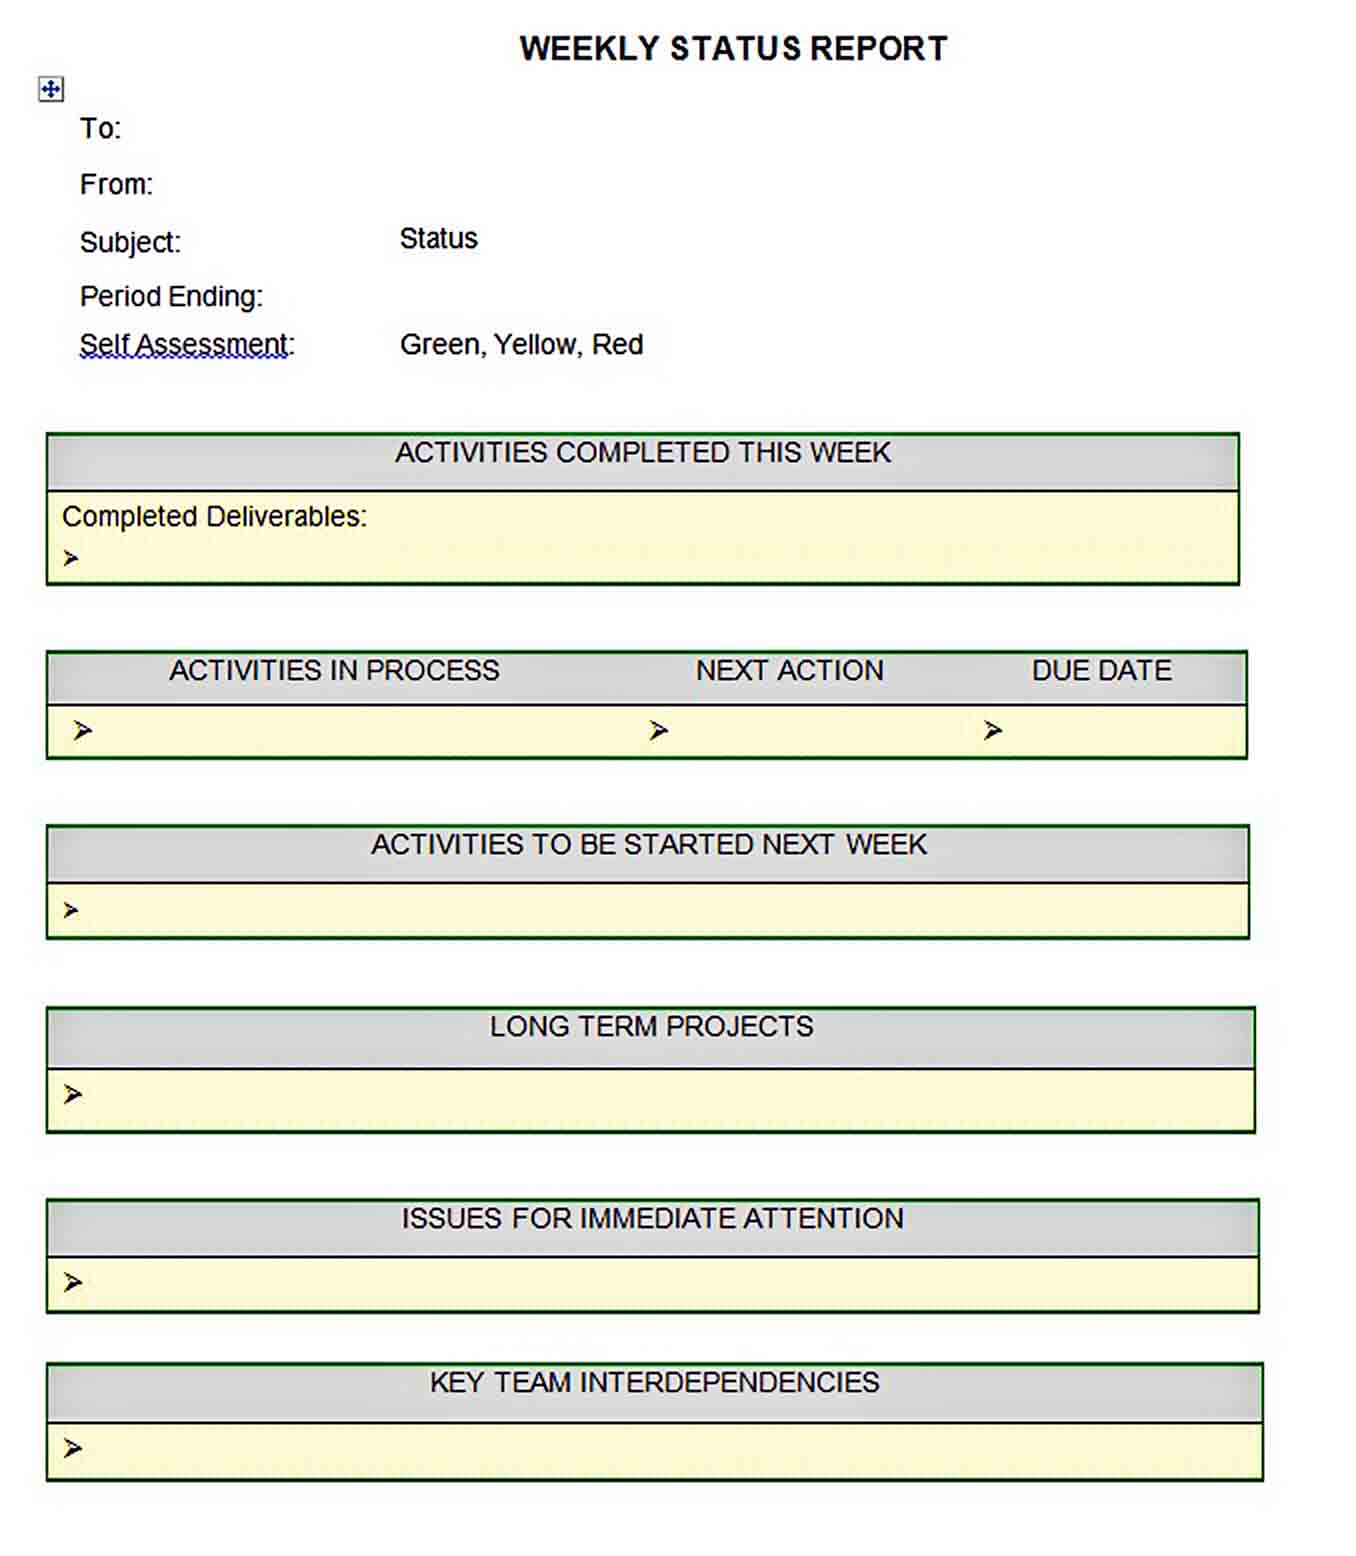 Templates Sample Weekly Status Report Editable Download1